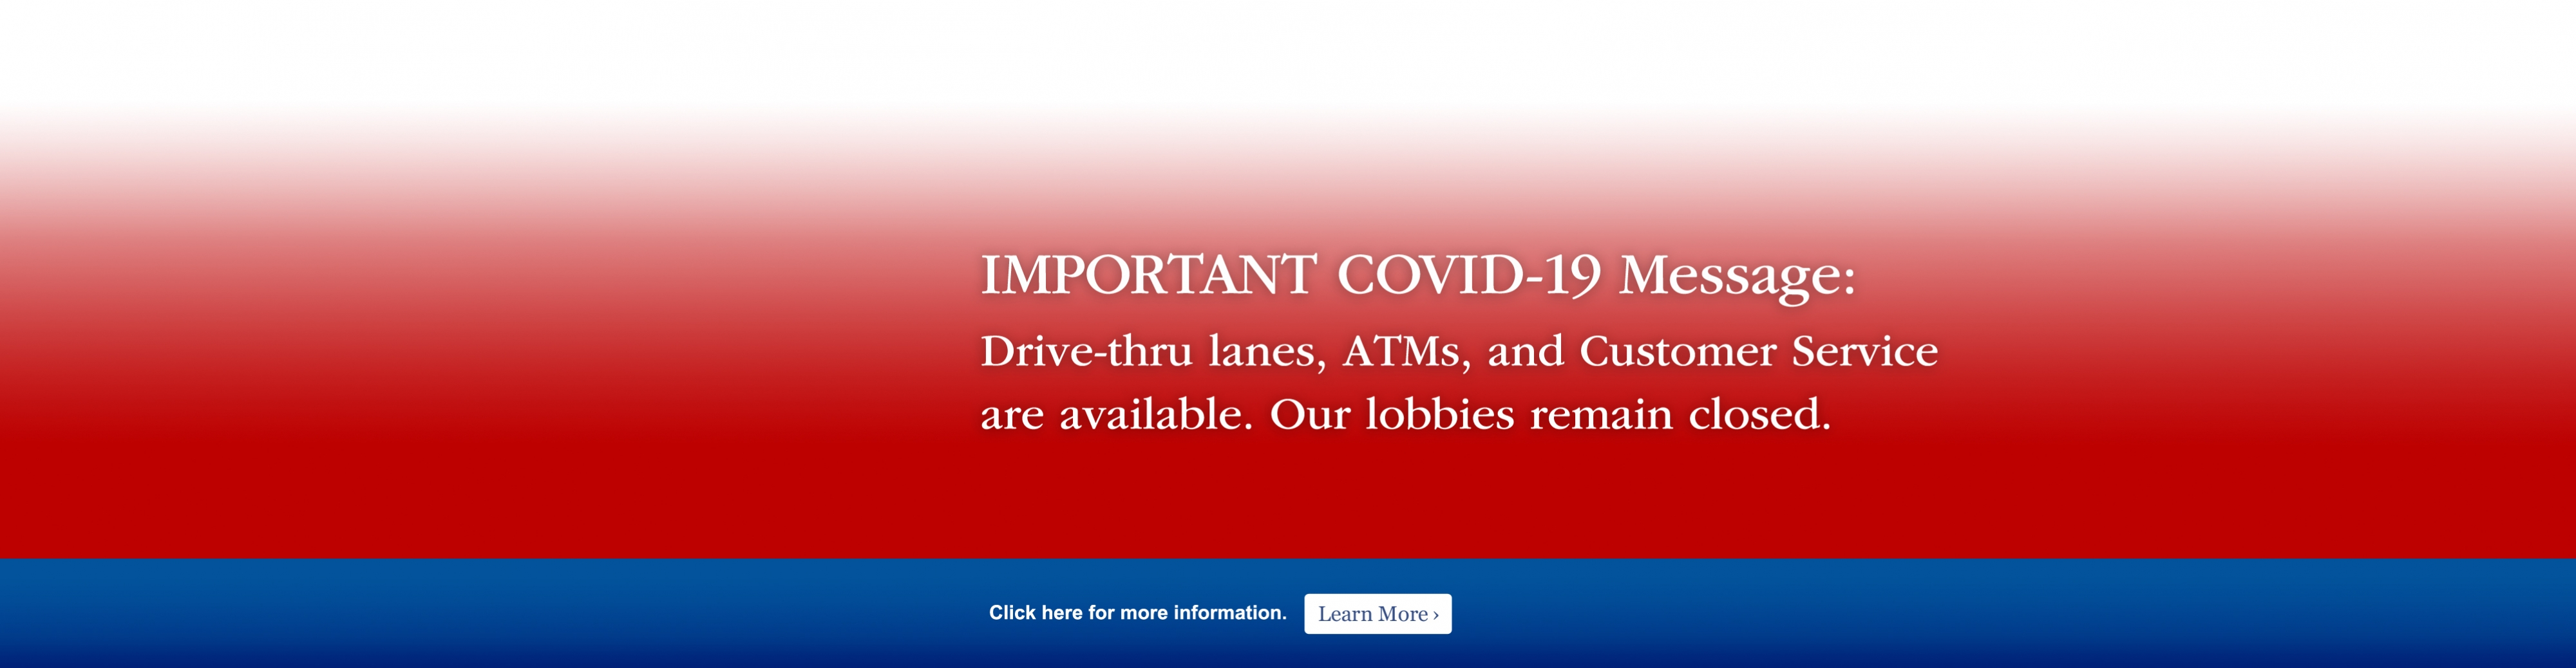 Important COVID-19 Message: All First National Bank locations will be operating as drive-thru only beginning March 19, 2020 Click here for more information. Learn More